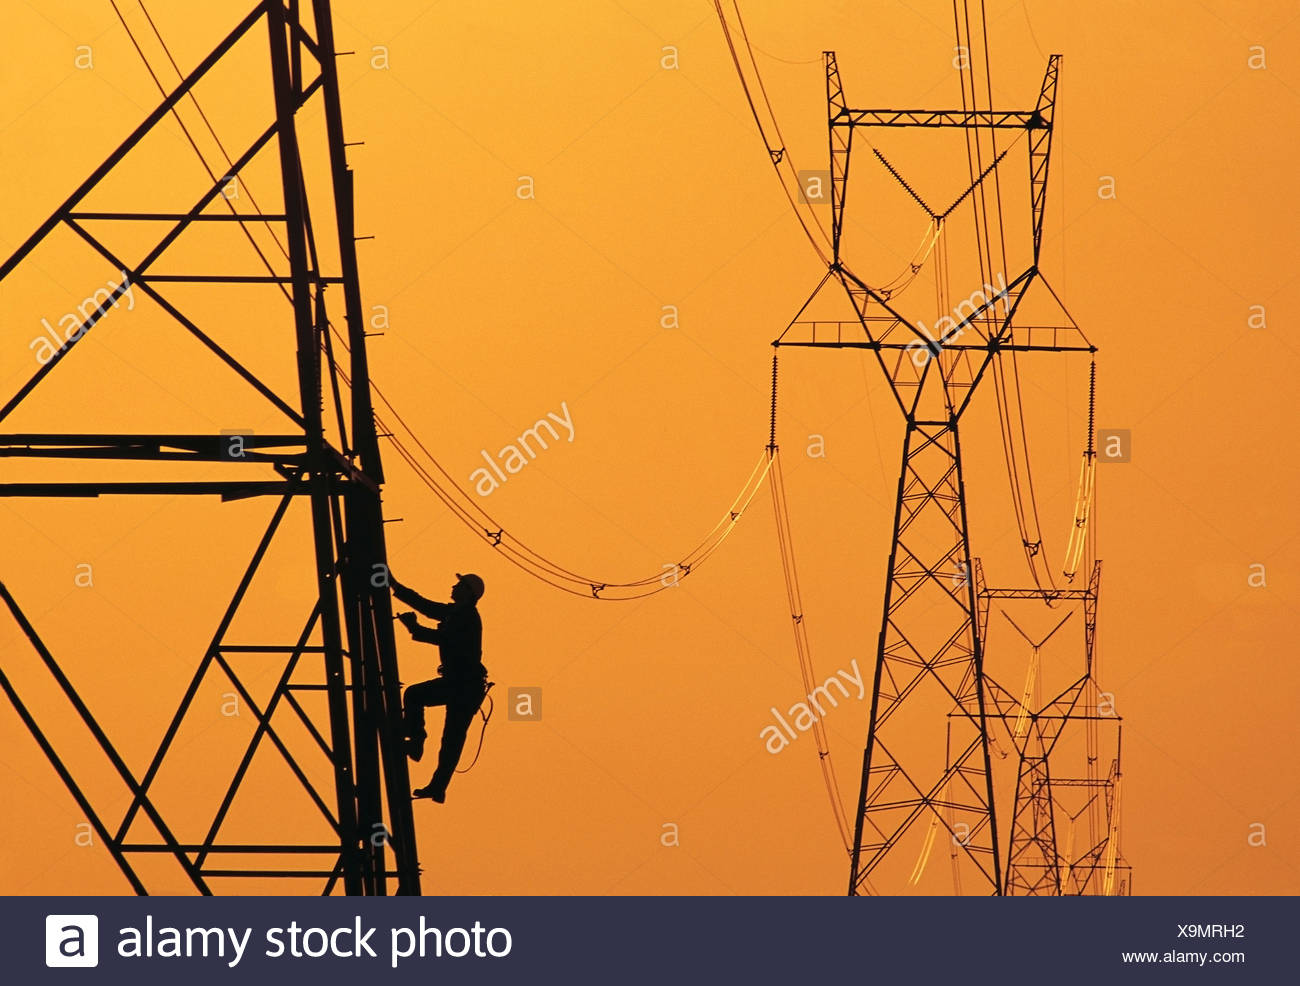 A worker climbs an electrical tower, Manitoba, Canada - Stock Image